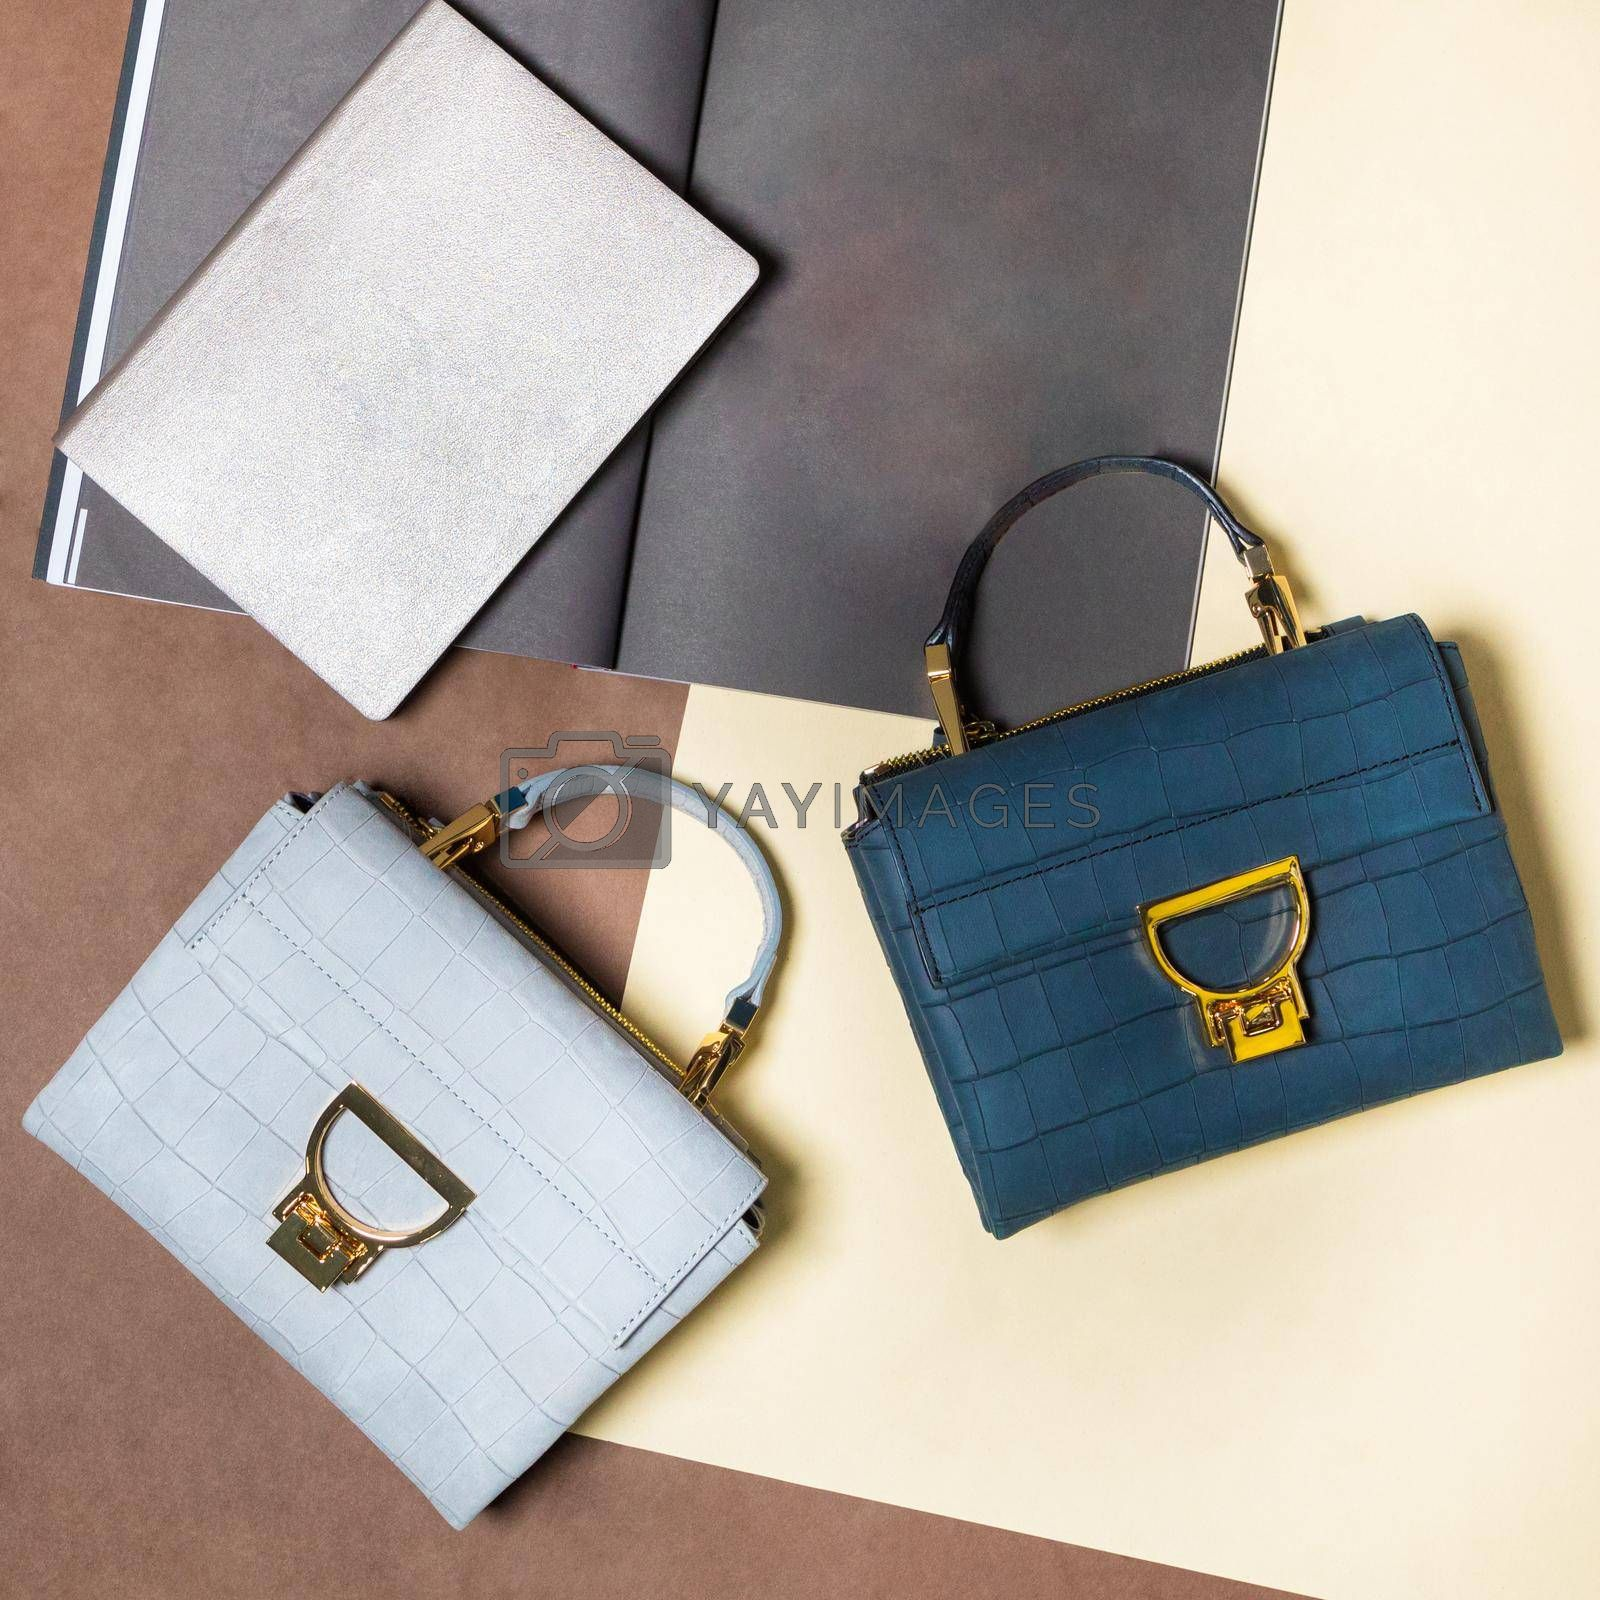 Woman handbags isolated top view